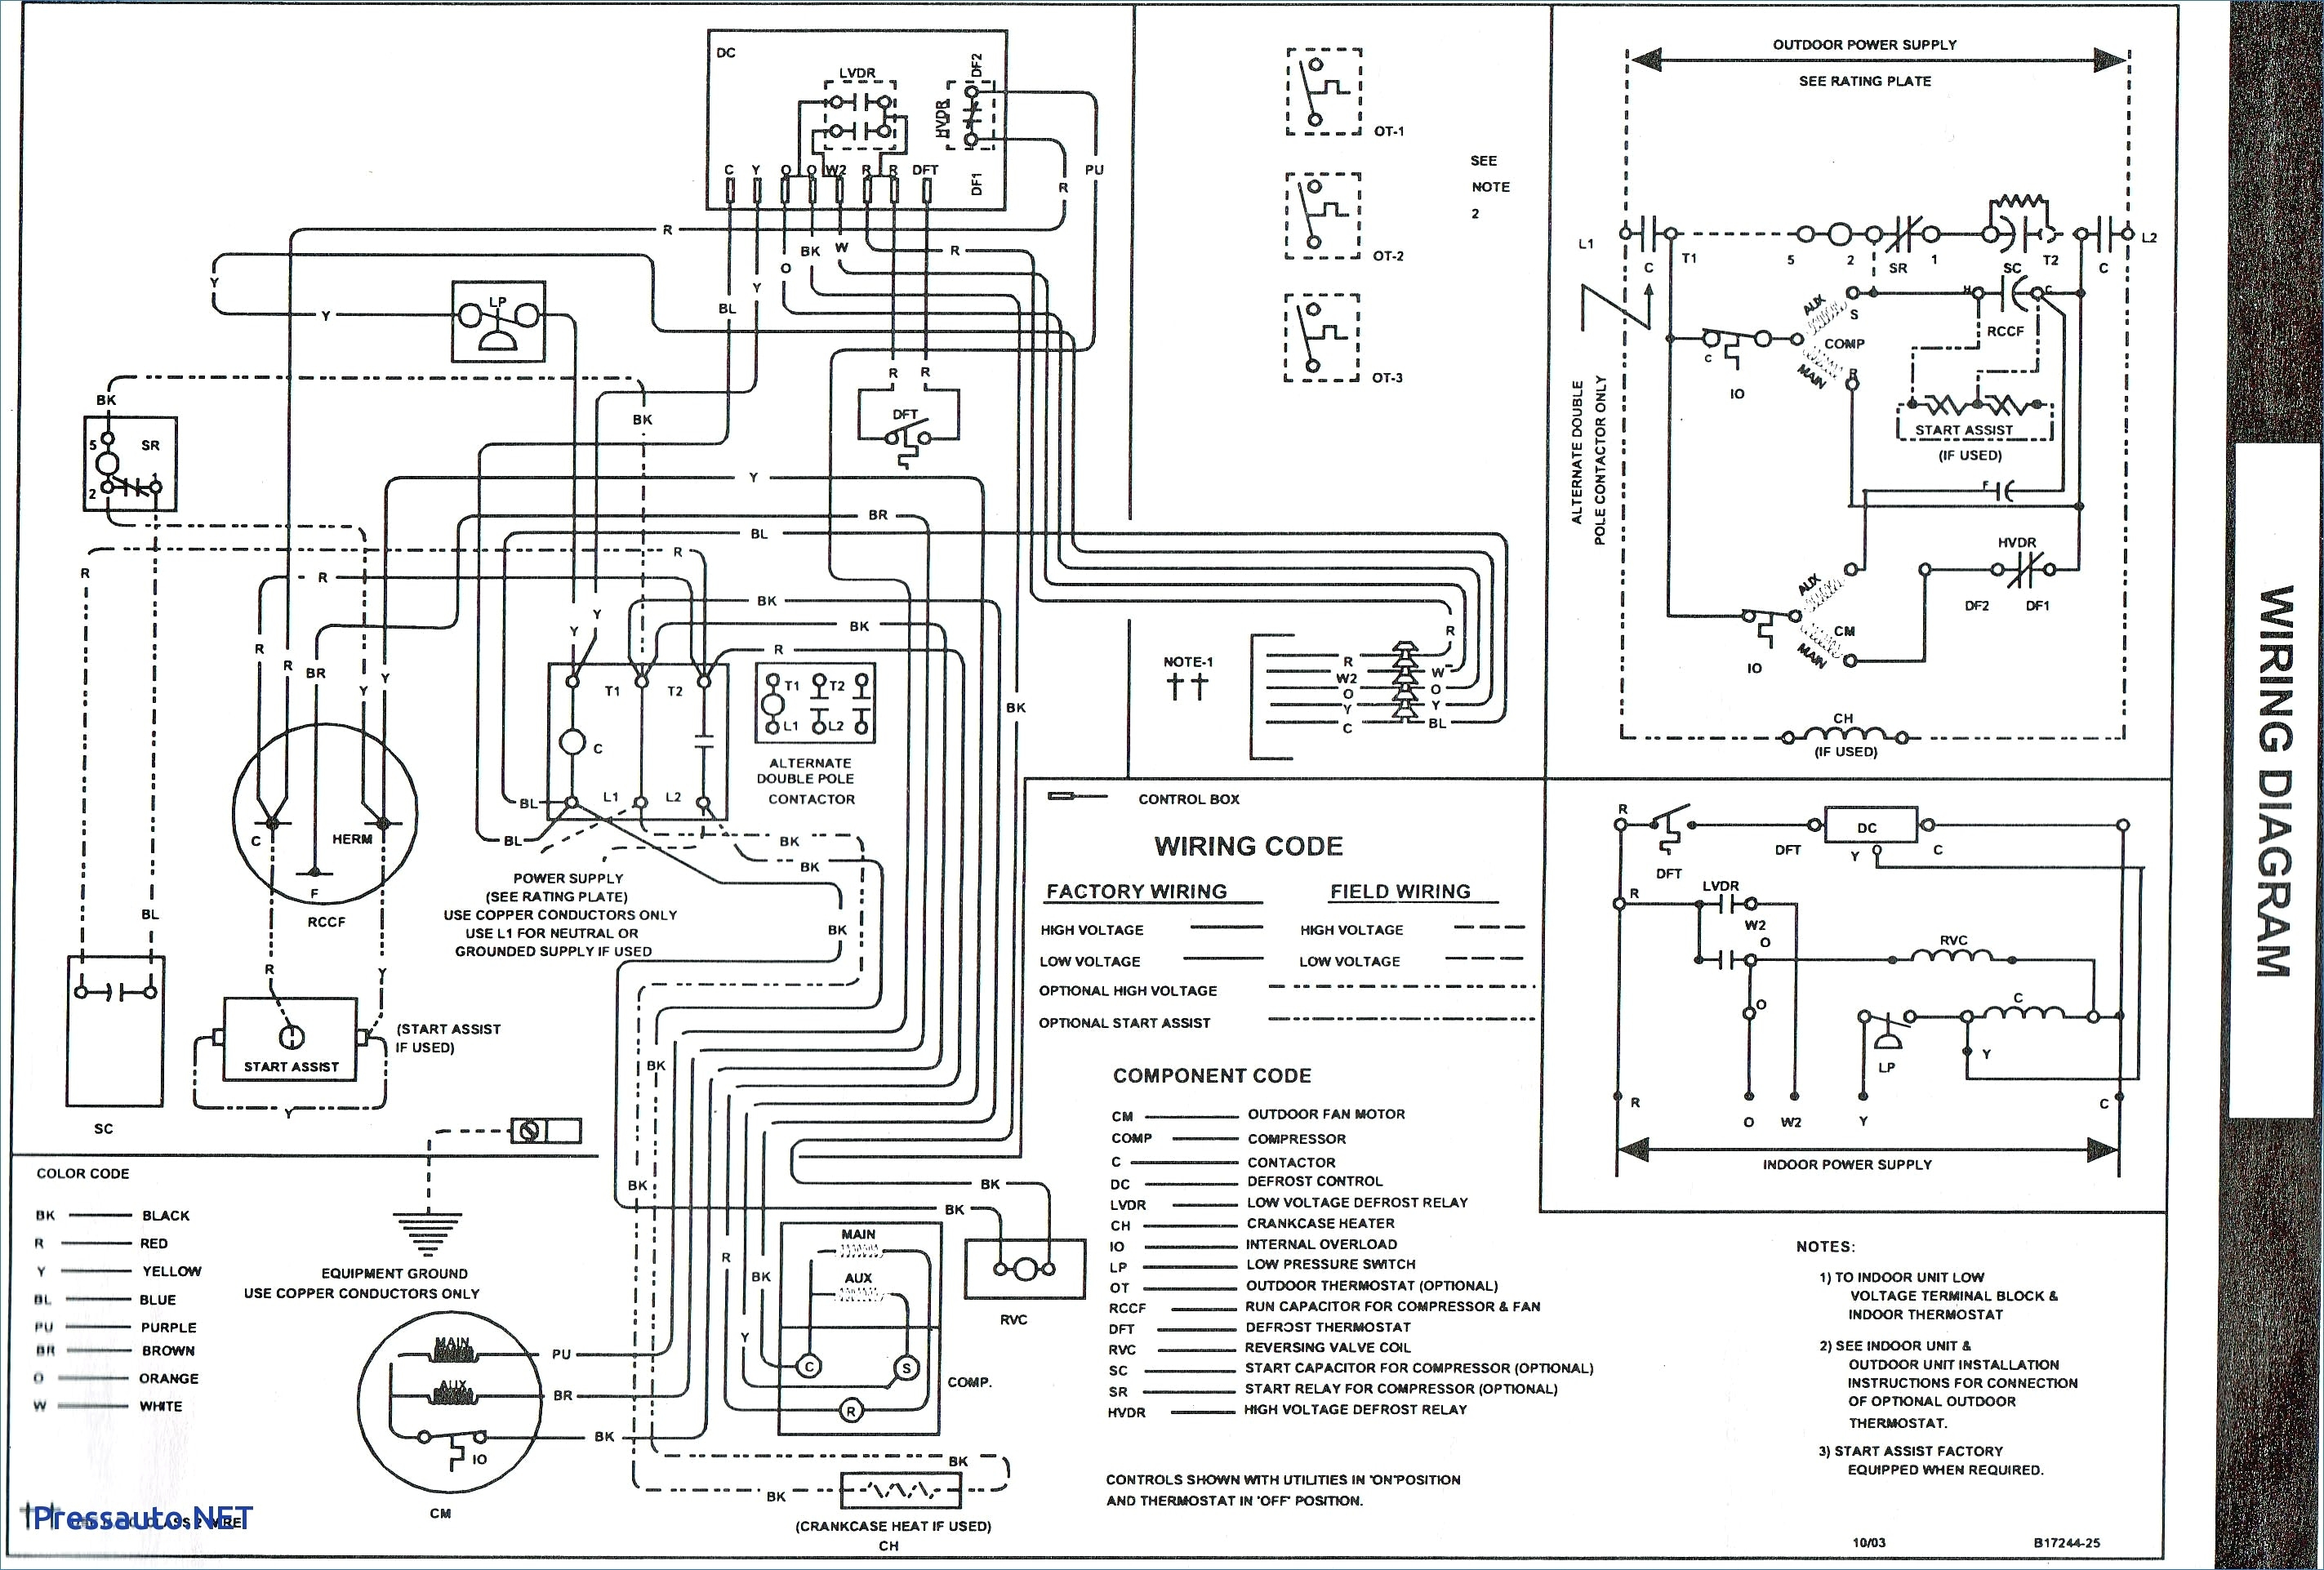 [DIAGRAM] Related Pictures Heat Pump Wiring Diagram